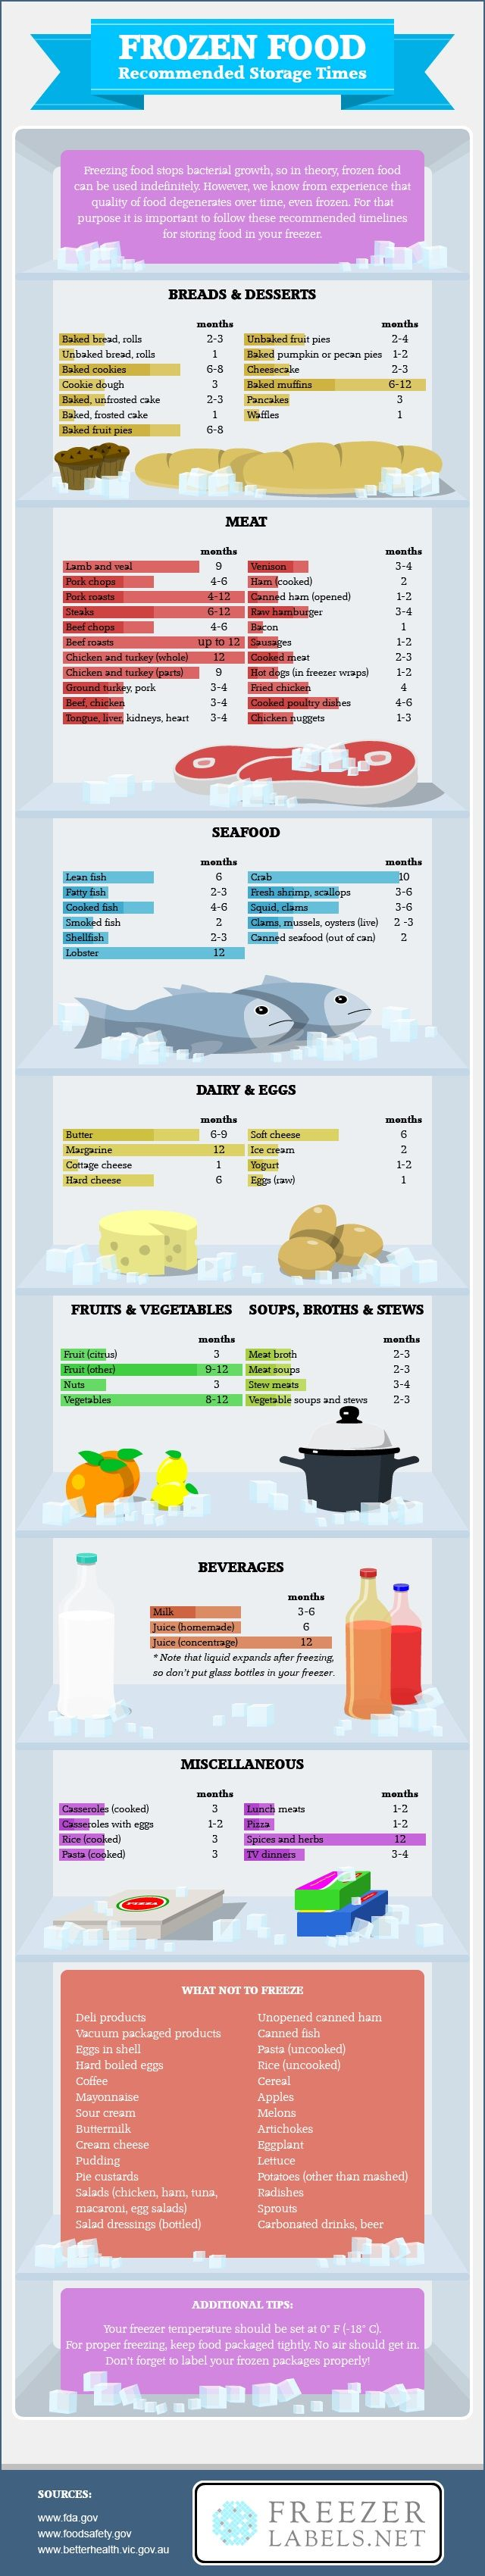 Frozen Food - how long to keep